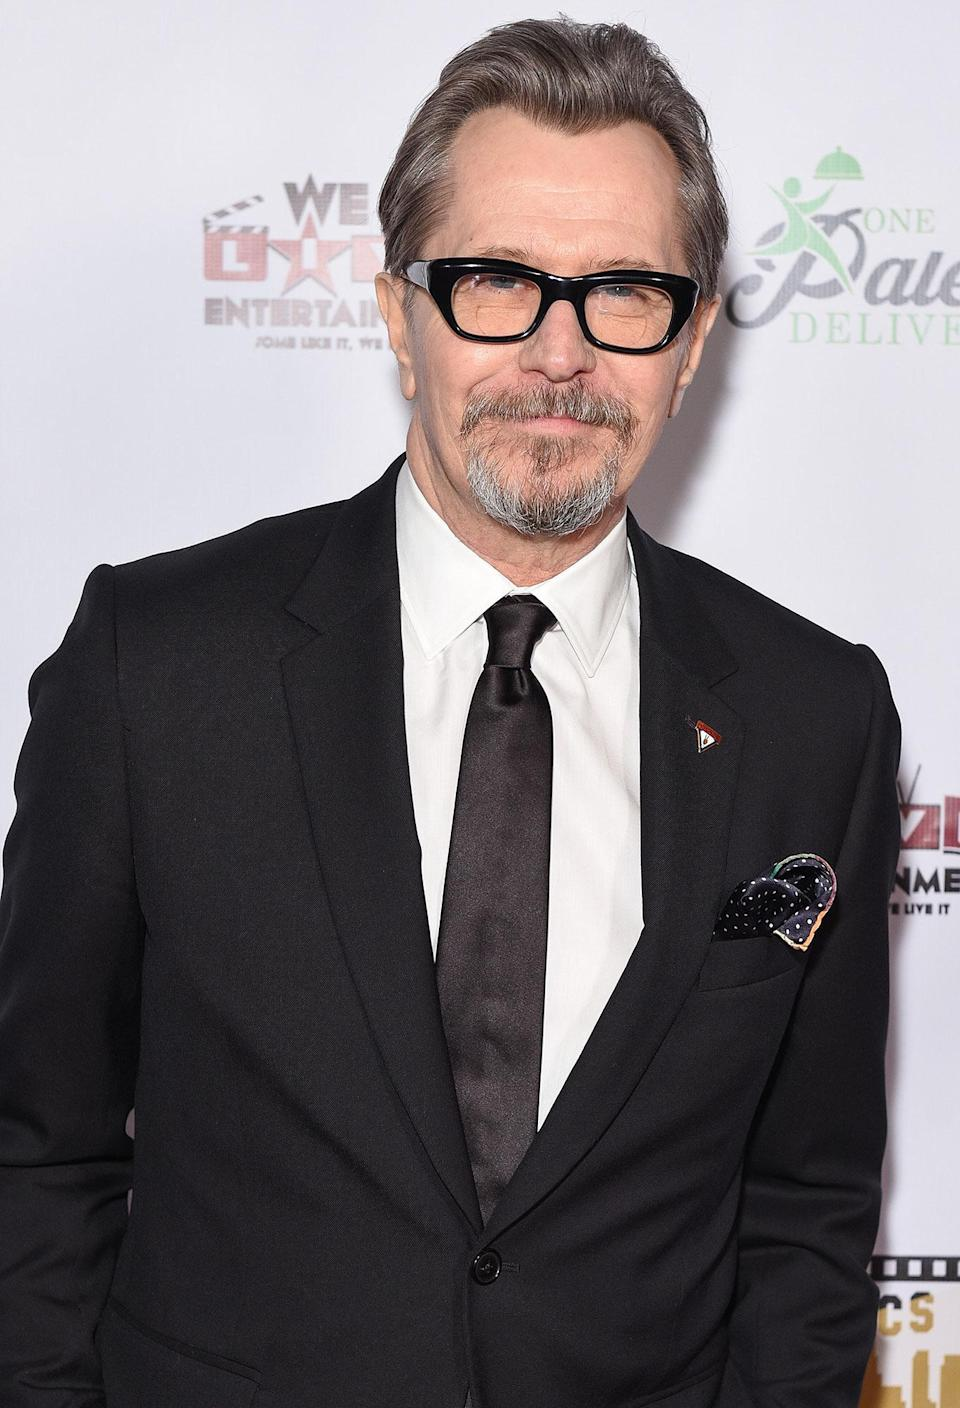 "<p><strong>Number of Marriages: </strong>5</p> <p><a href=""https://people.com/tag/gary-oldman/"" rel=""nofollow noopener"" target=""_blank"" data-ylk=""slk:Oldman"" class=""link rapid-noclick-resp"">Oldman</a>, who has been <a href=""https://people.com/movies/gary-oldman-marries-for-fifth-time/"" rel=""nofollow noopener"" target=""_blank"" data-ylk=""slk:married to writer Gisele Schmidt since 2017"" class=""link rapid-noclick-resp"">married to writer Gisele Schmidt since 2017</a>, has a few marriages under his belt. He was previously married to actress Lesley Manville from 1987 to 1990, and then Uma Thurman from 1990 until 1992. Oldman married Donya Fiorentino in 1997 and the pair divorced in 2001. In 2008, he married Alexandra Edenborough, a union that ended with their 2015 divorce. </p>"